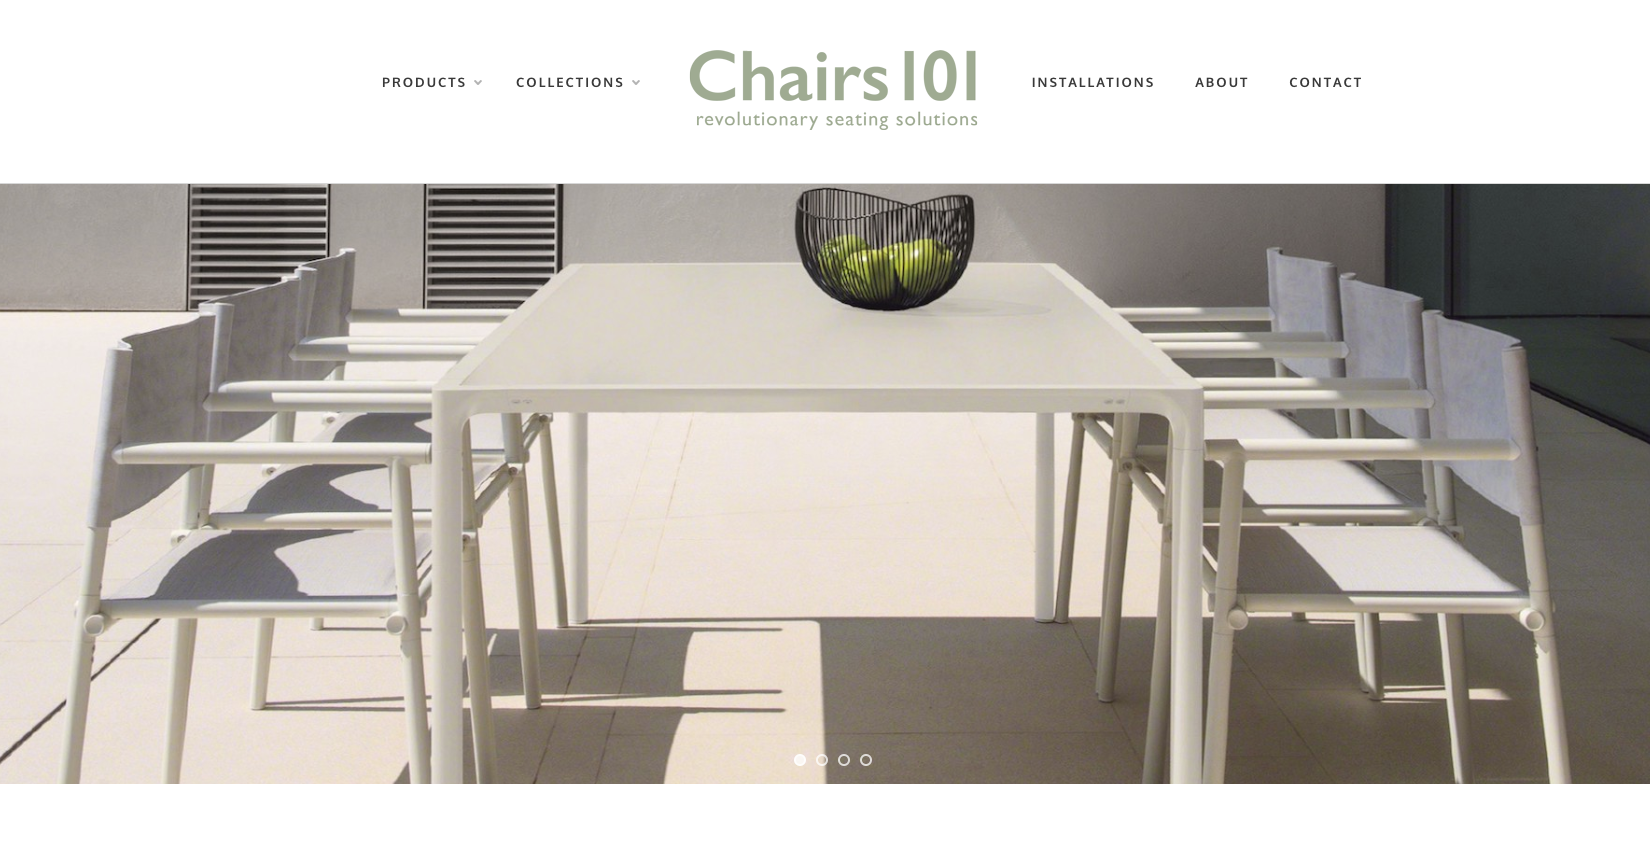 Chairs 101 website